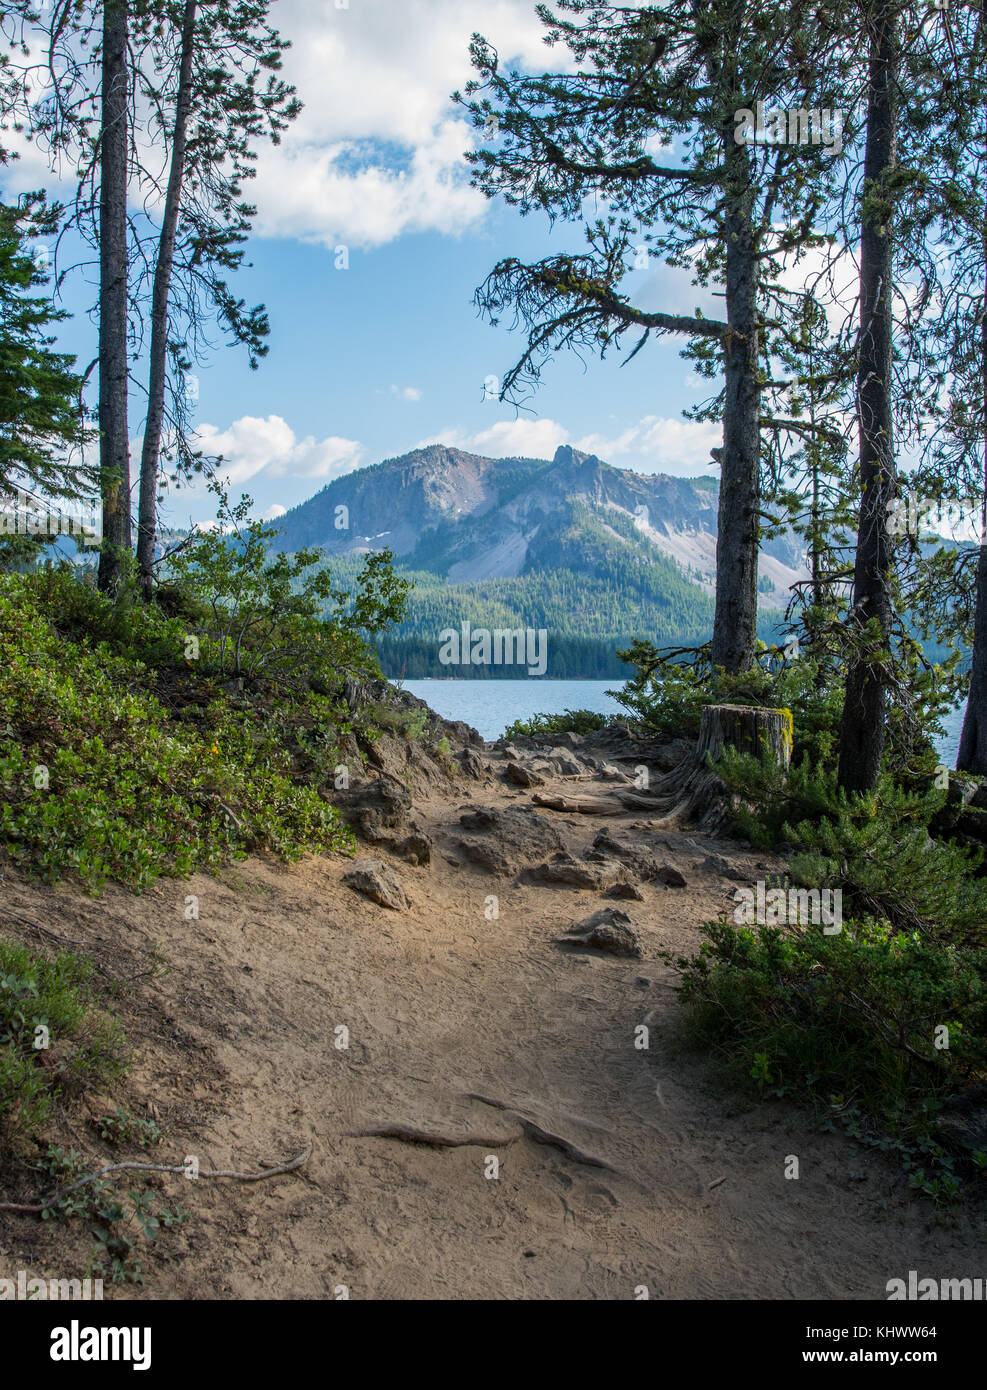 Paulina Peak Framed by Trees Along Trail - Stock Image